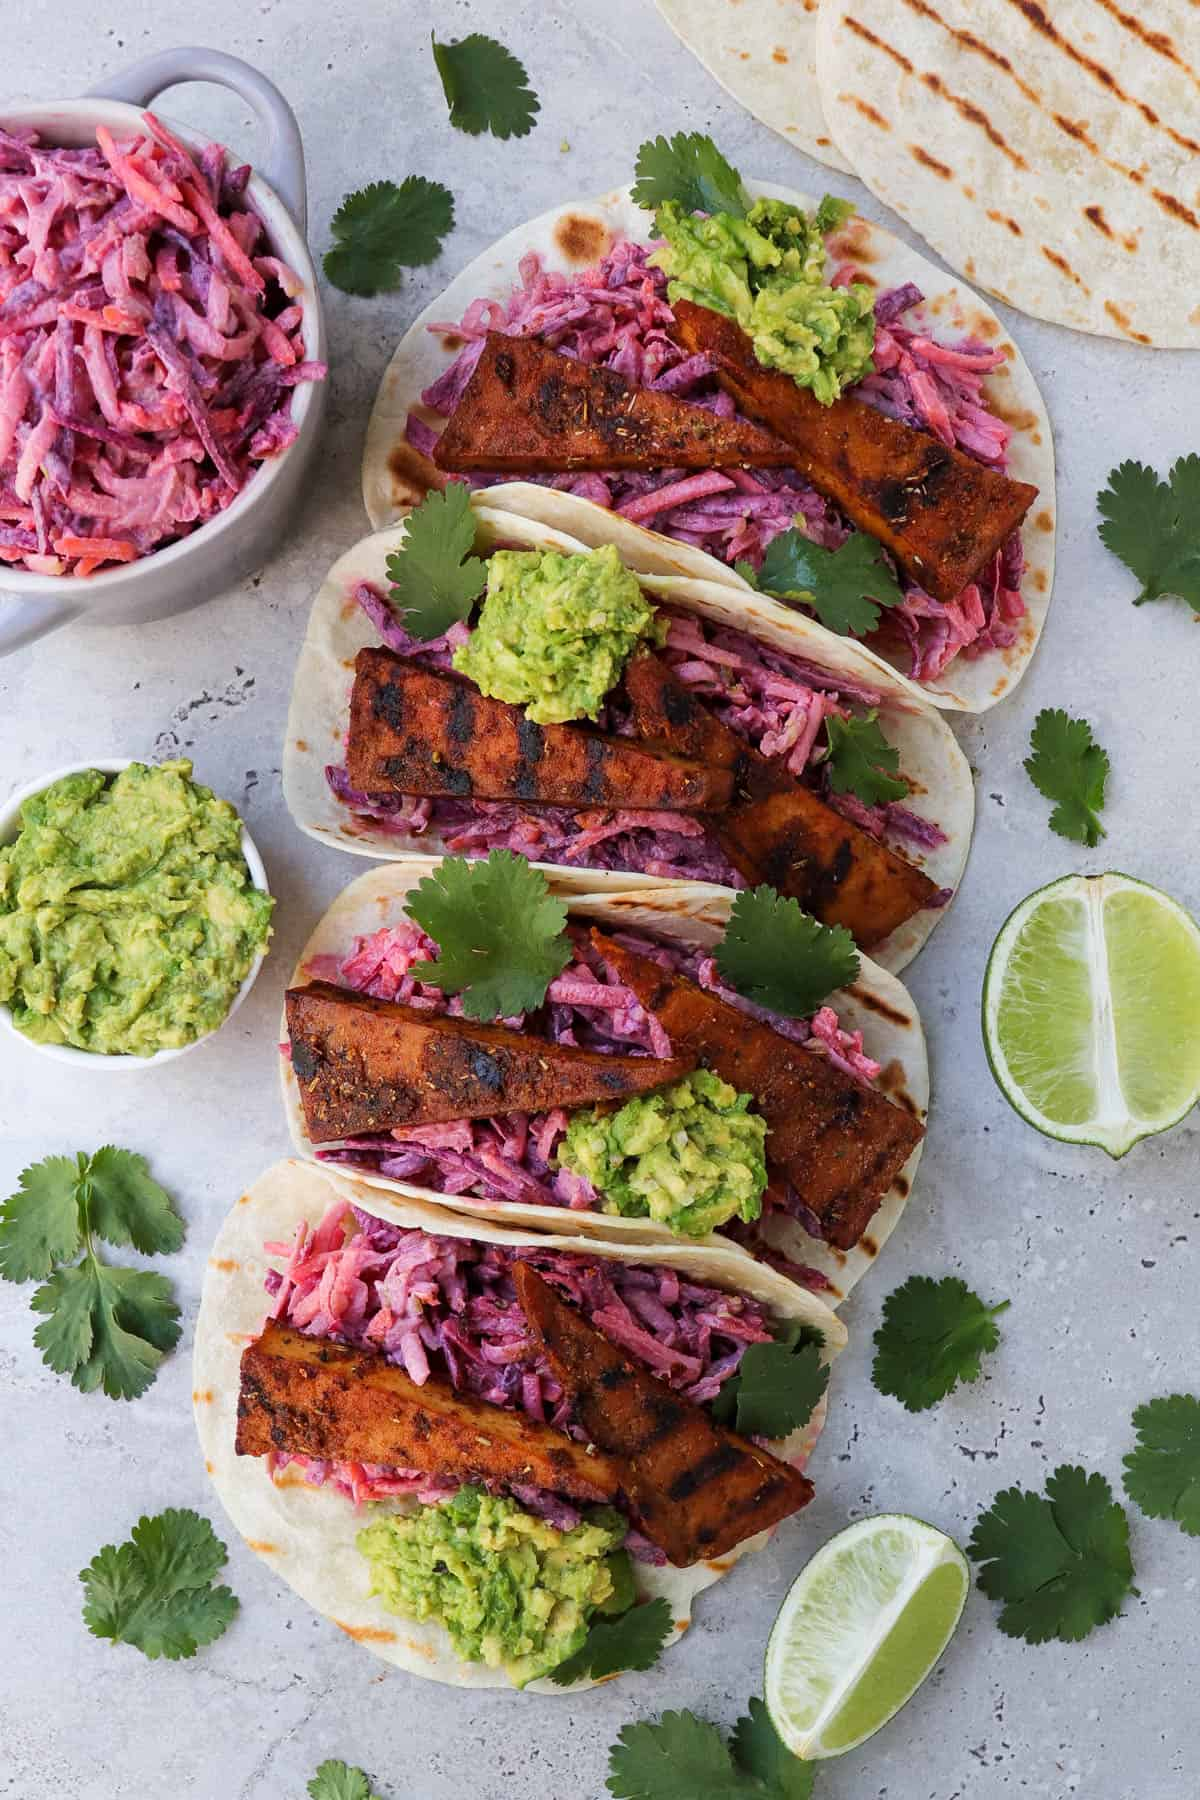 Top view of tofu tacos on angle. Coriander leaves, limes, avocado and slaw in a dish on the sides.